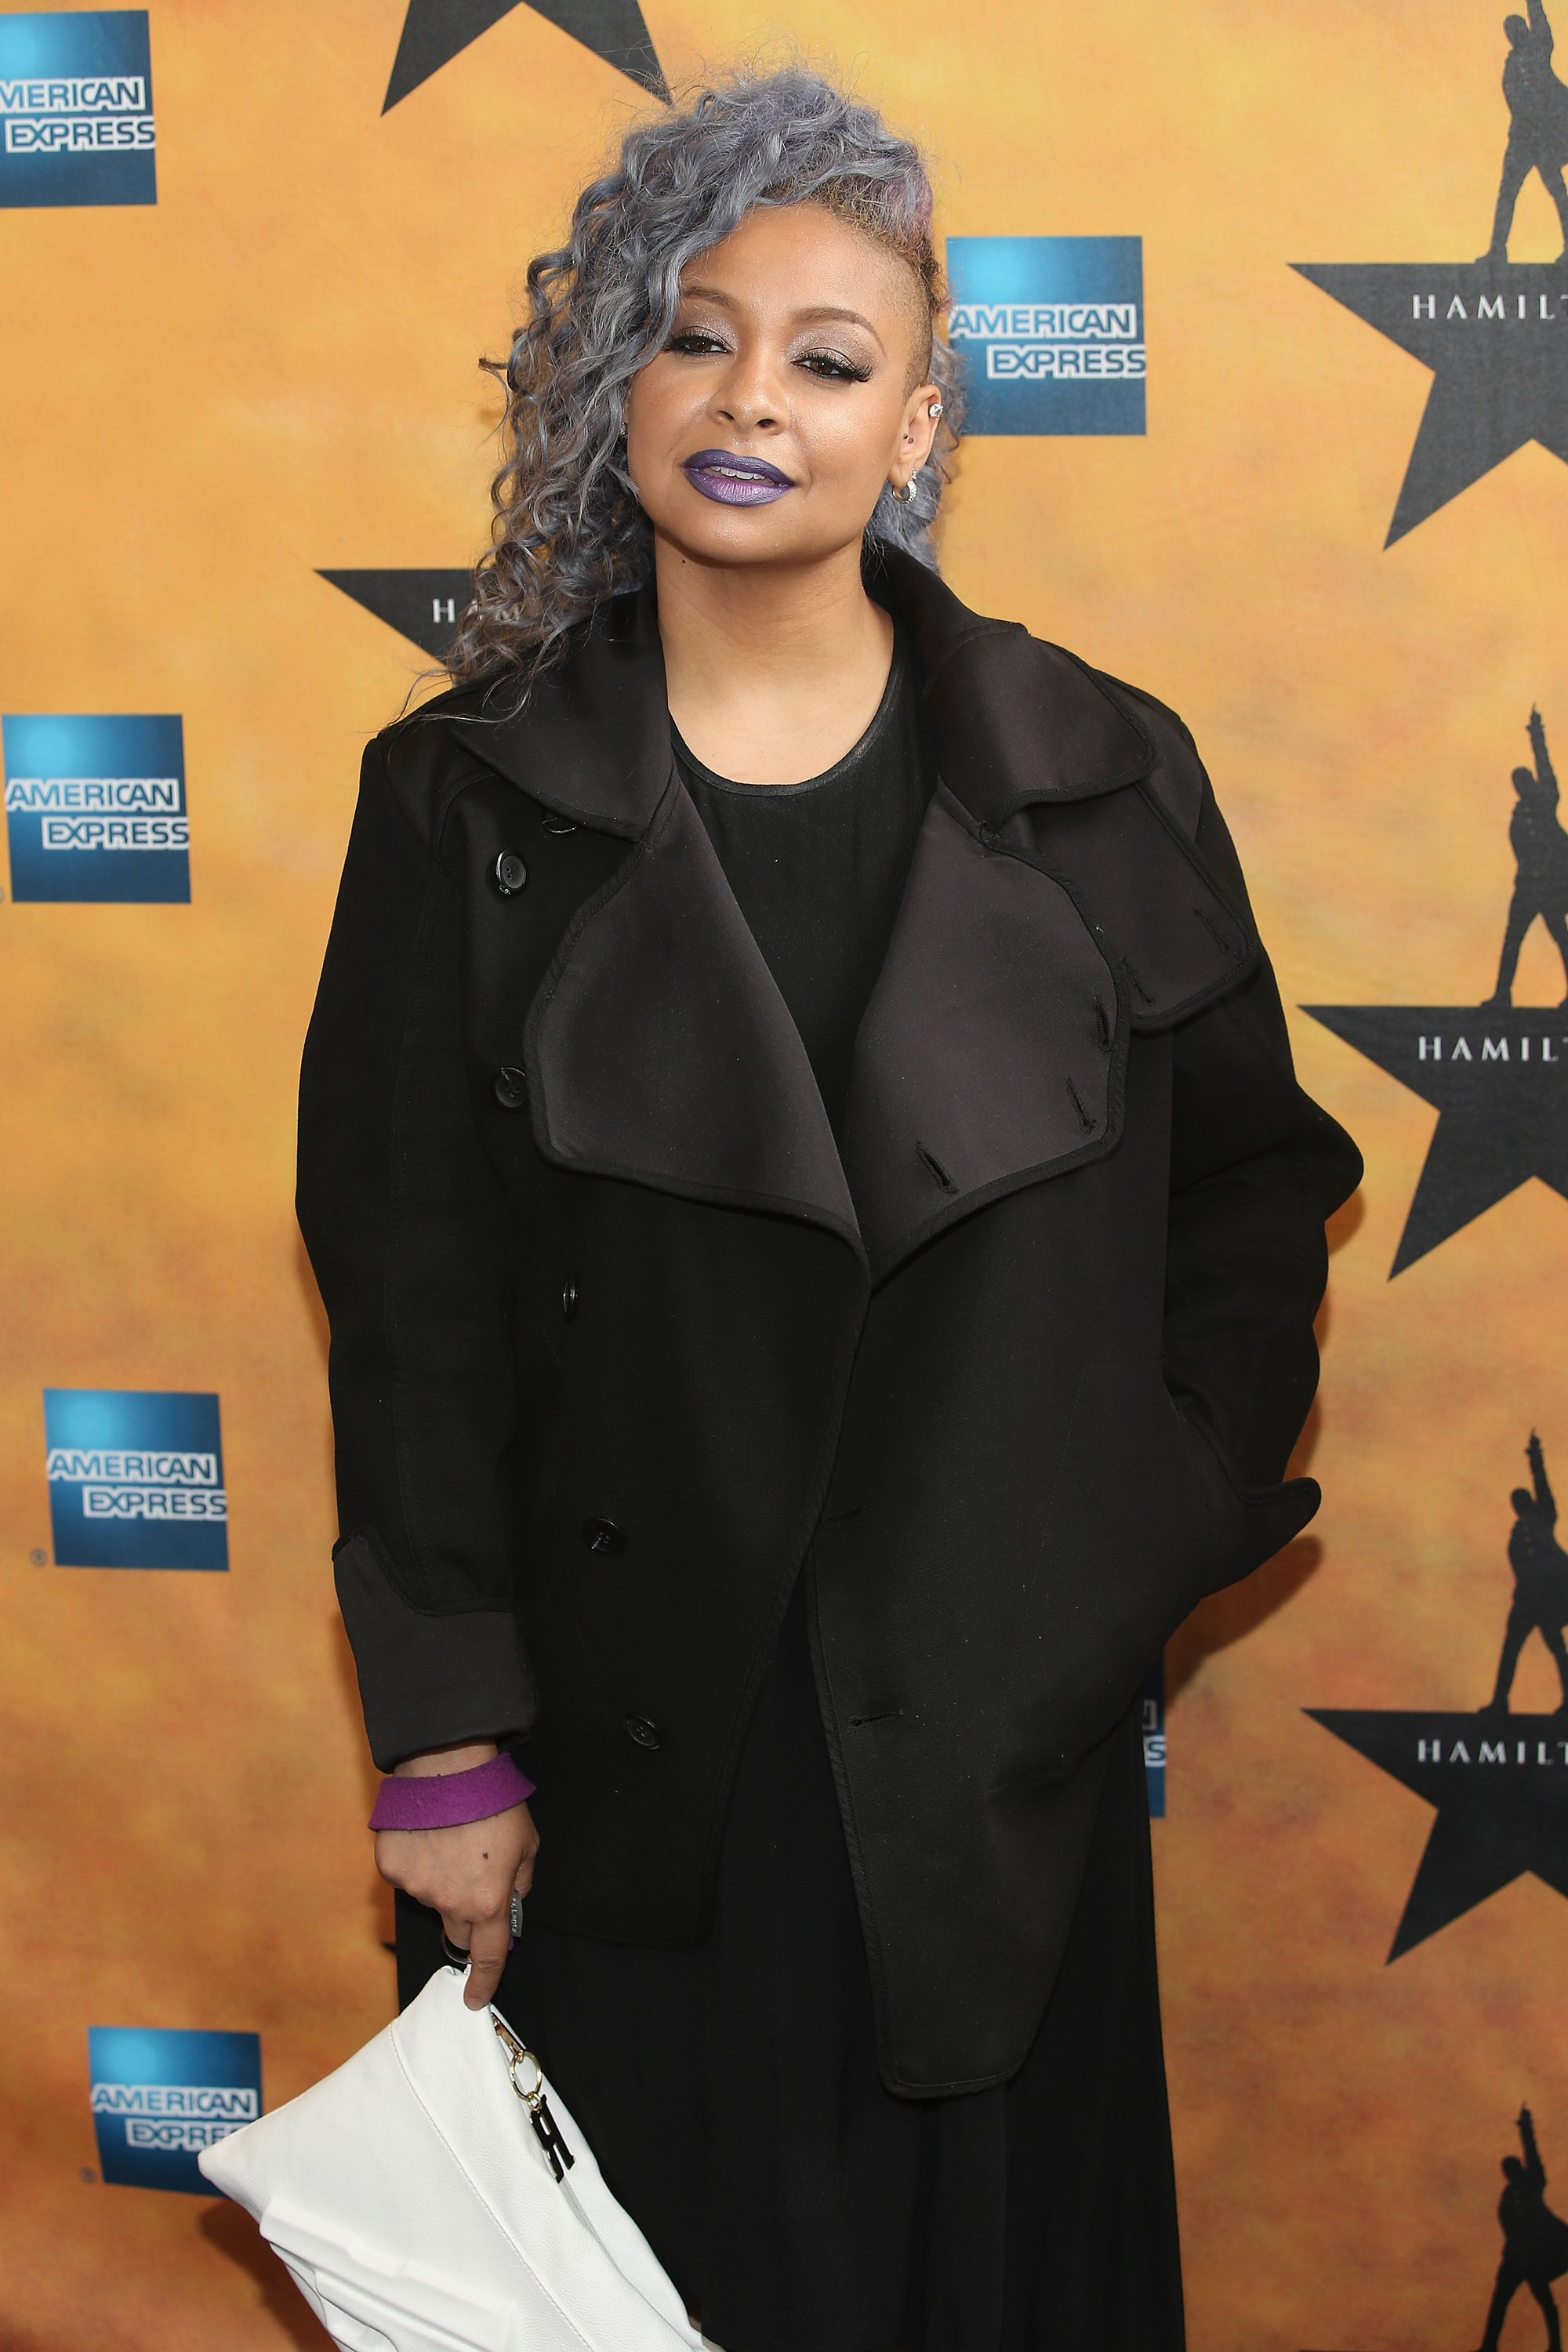 """Raven-Symone at the """"Hamilton"""" Broadway Opening Night at Richard Rodgers Theatre on August 6, 2015 in New York City 